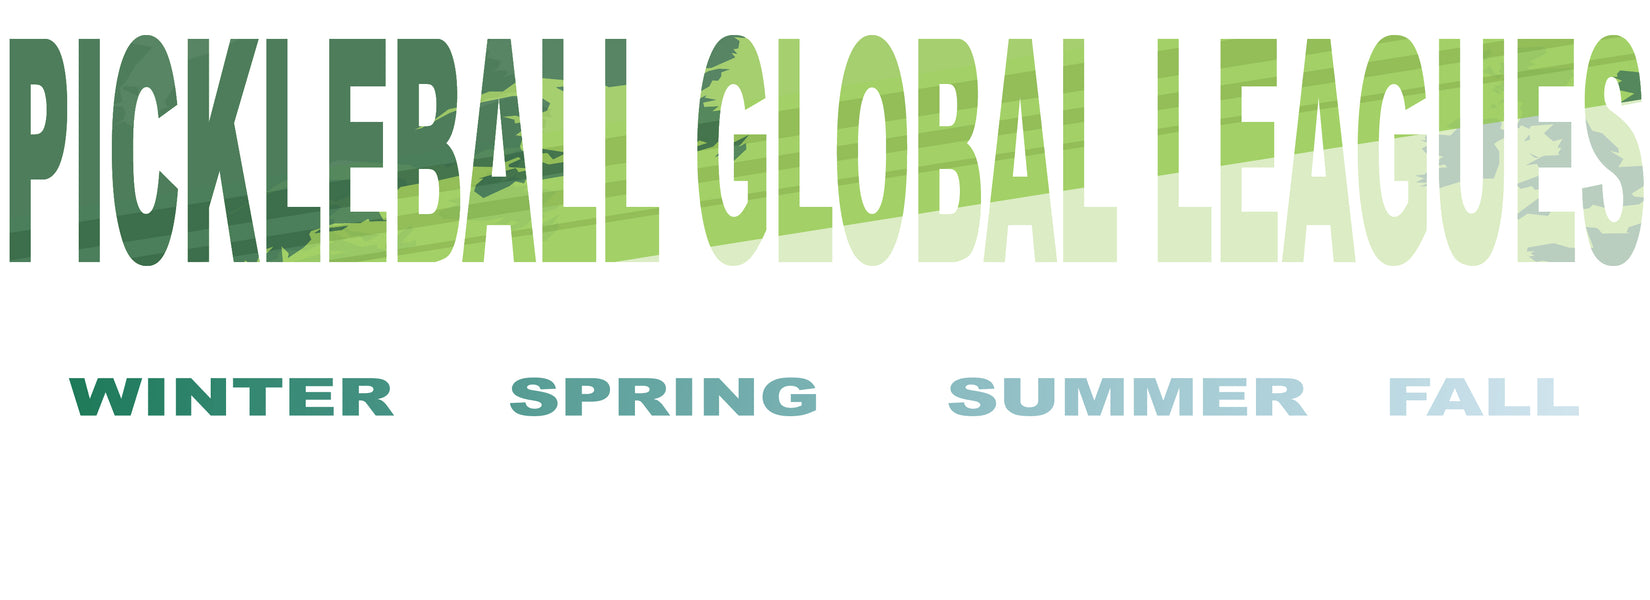 Pickleball Global Leagues - Winter